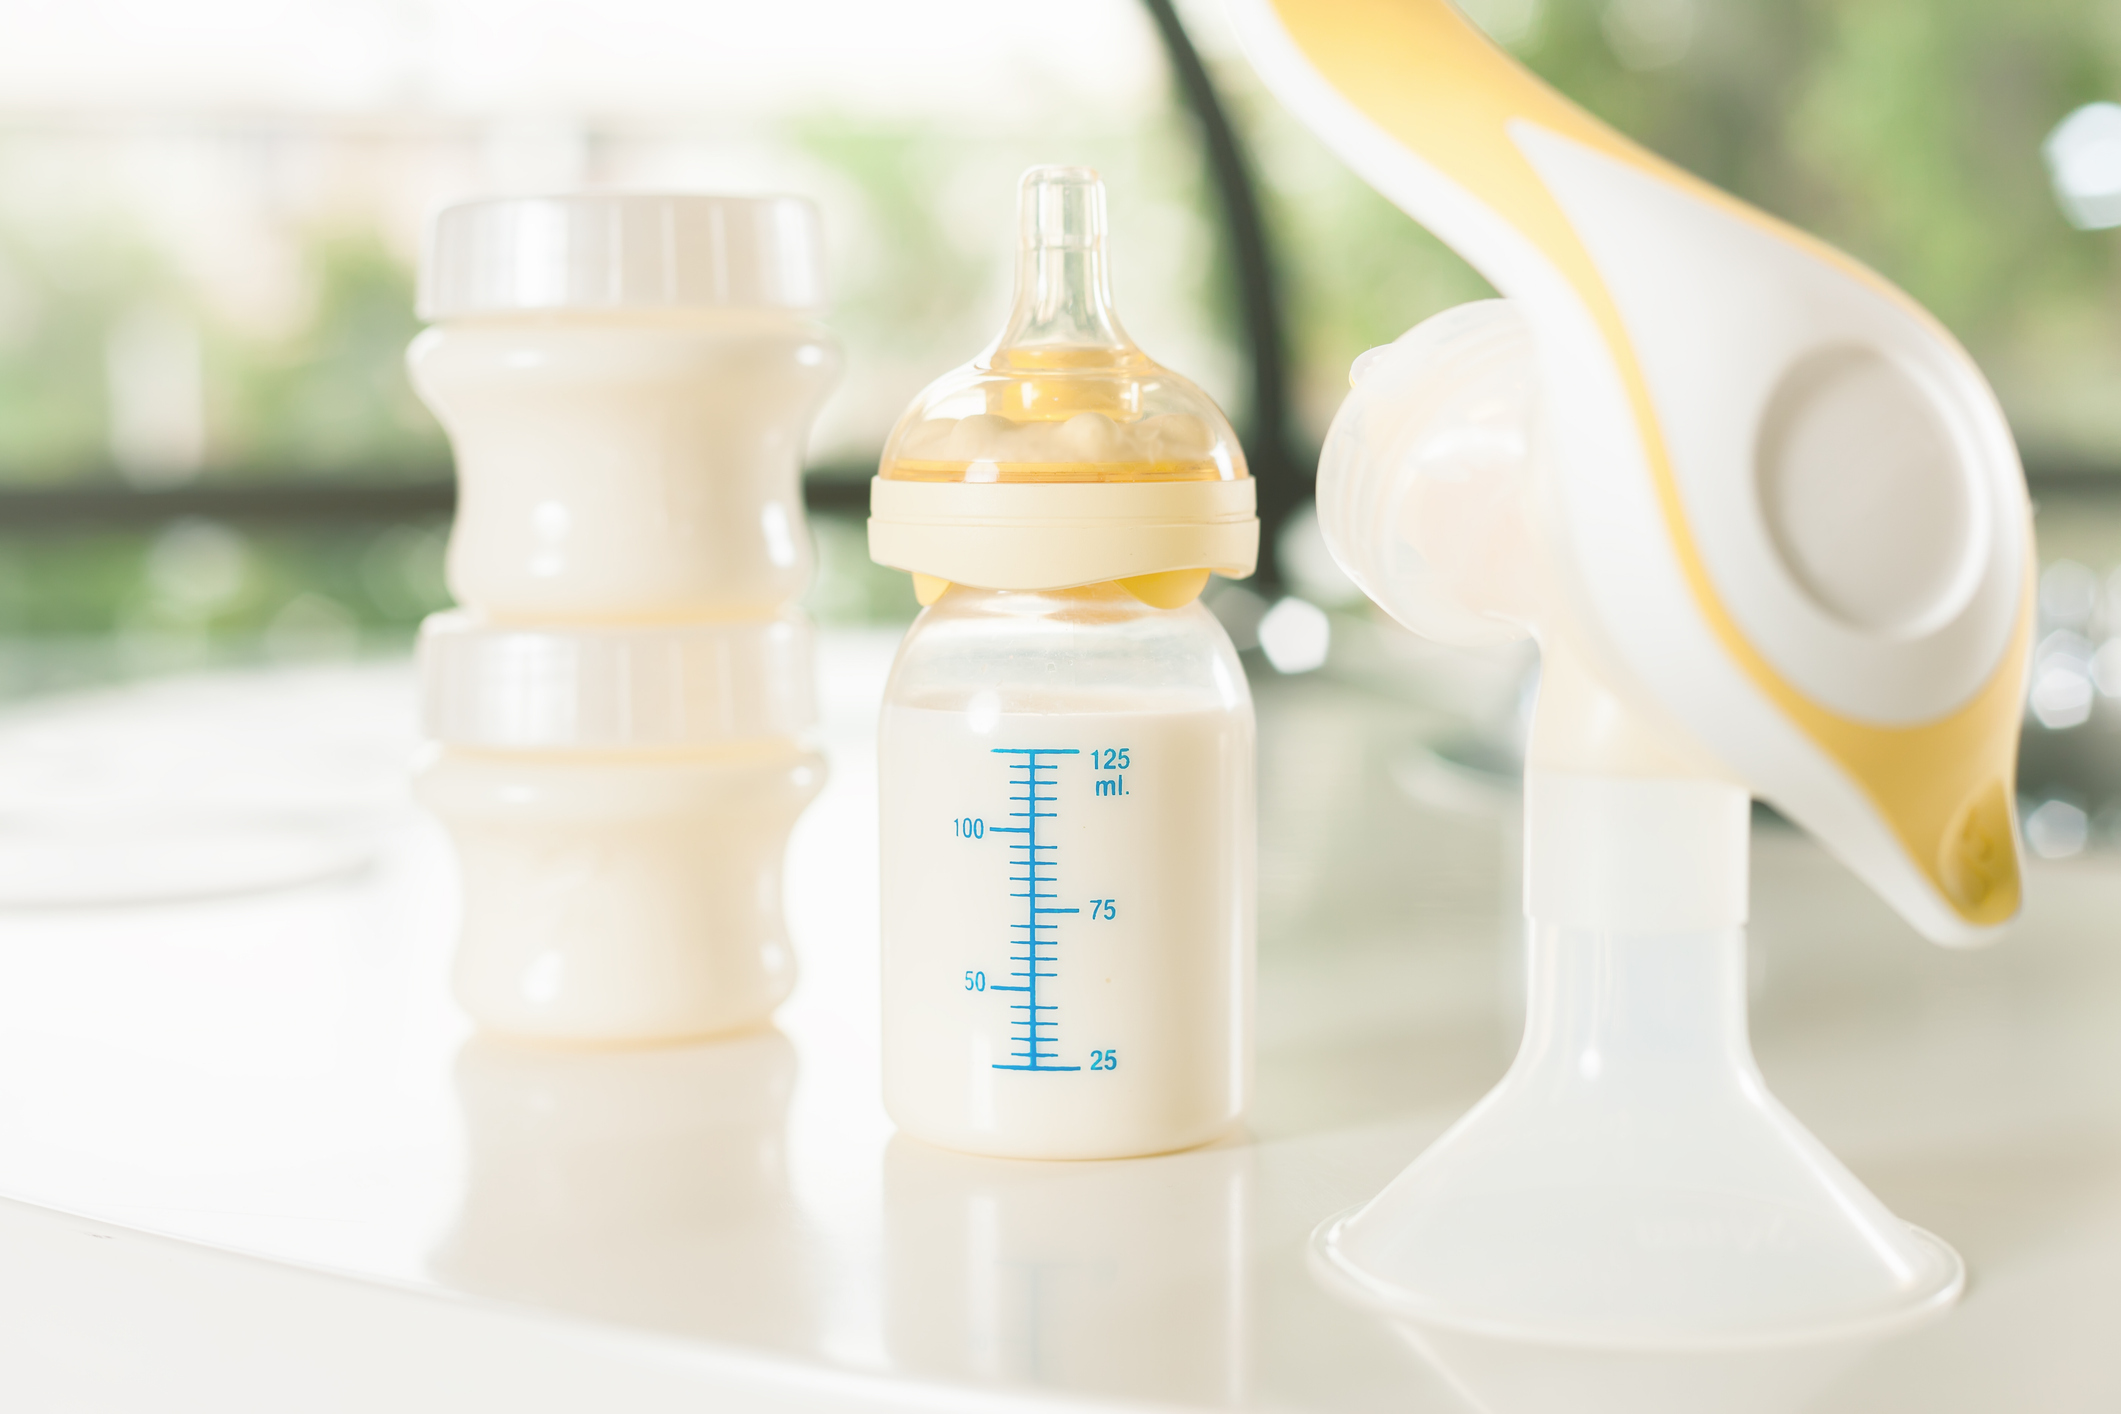 What questions do you have about breast pumps?